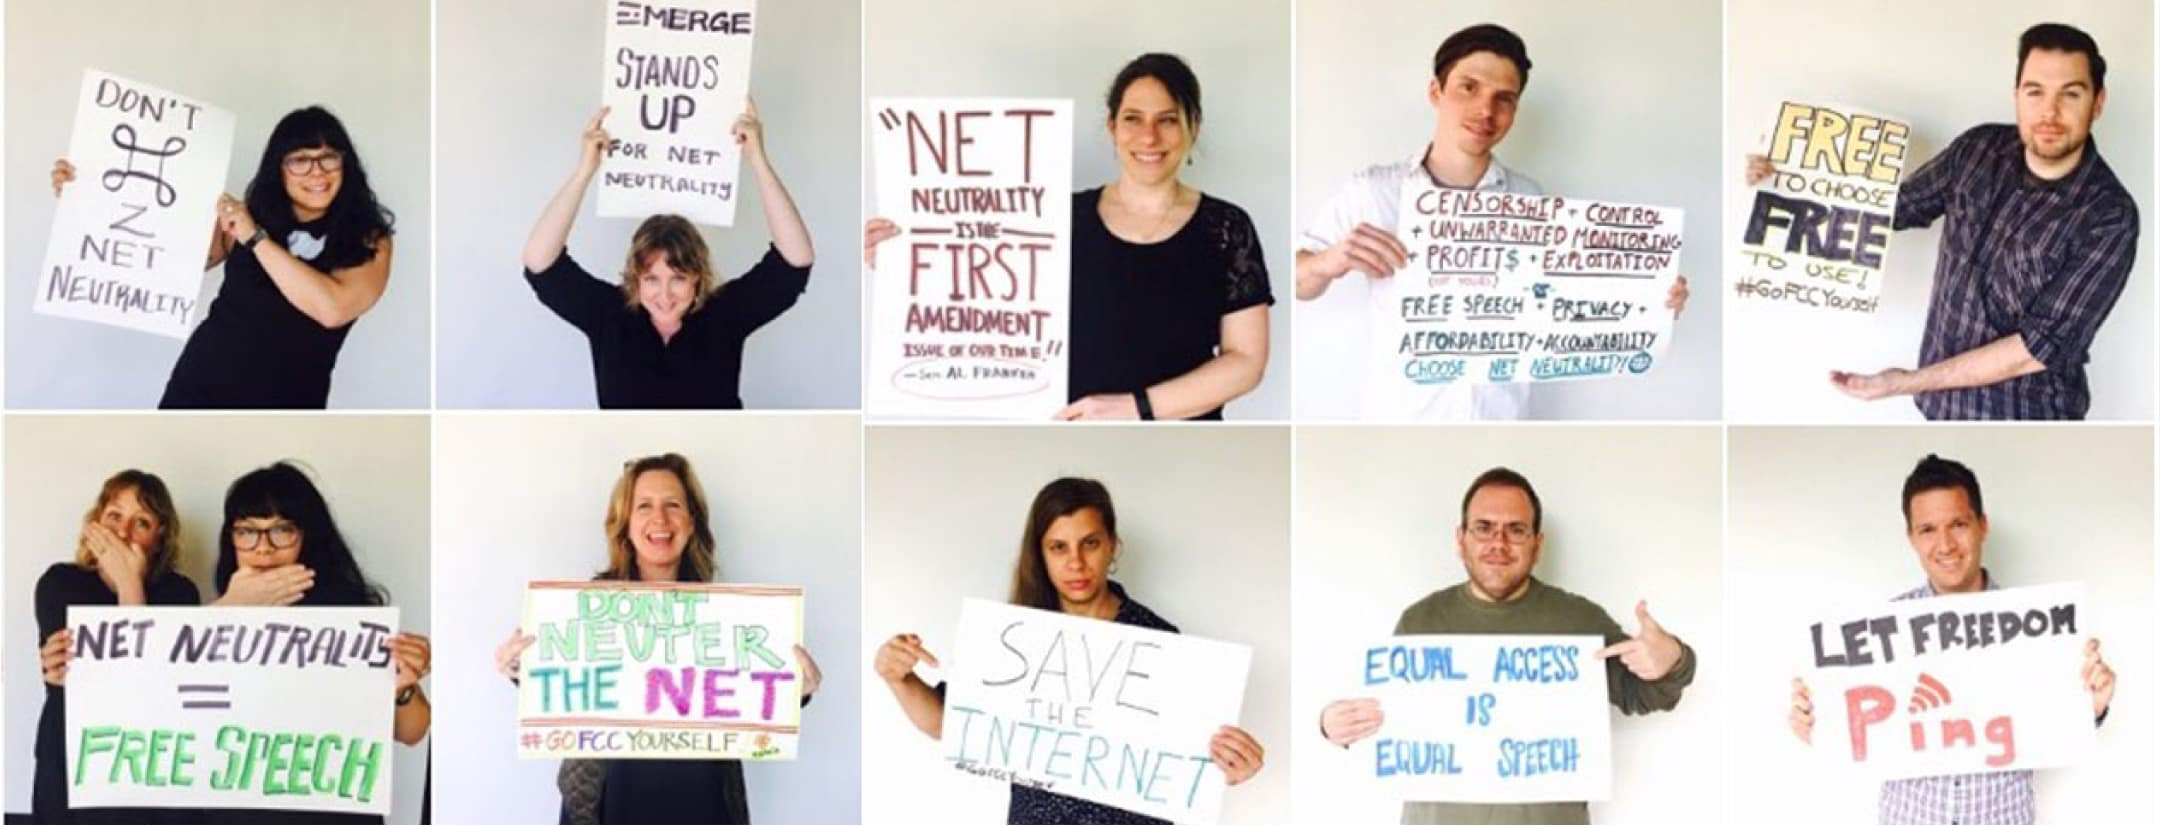 Emerge Stands Up for Net Neutrality